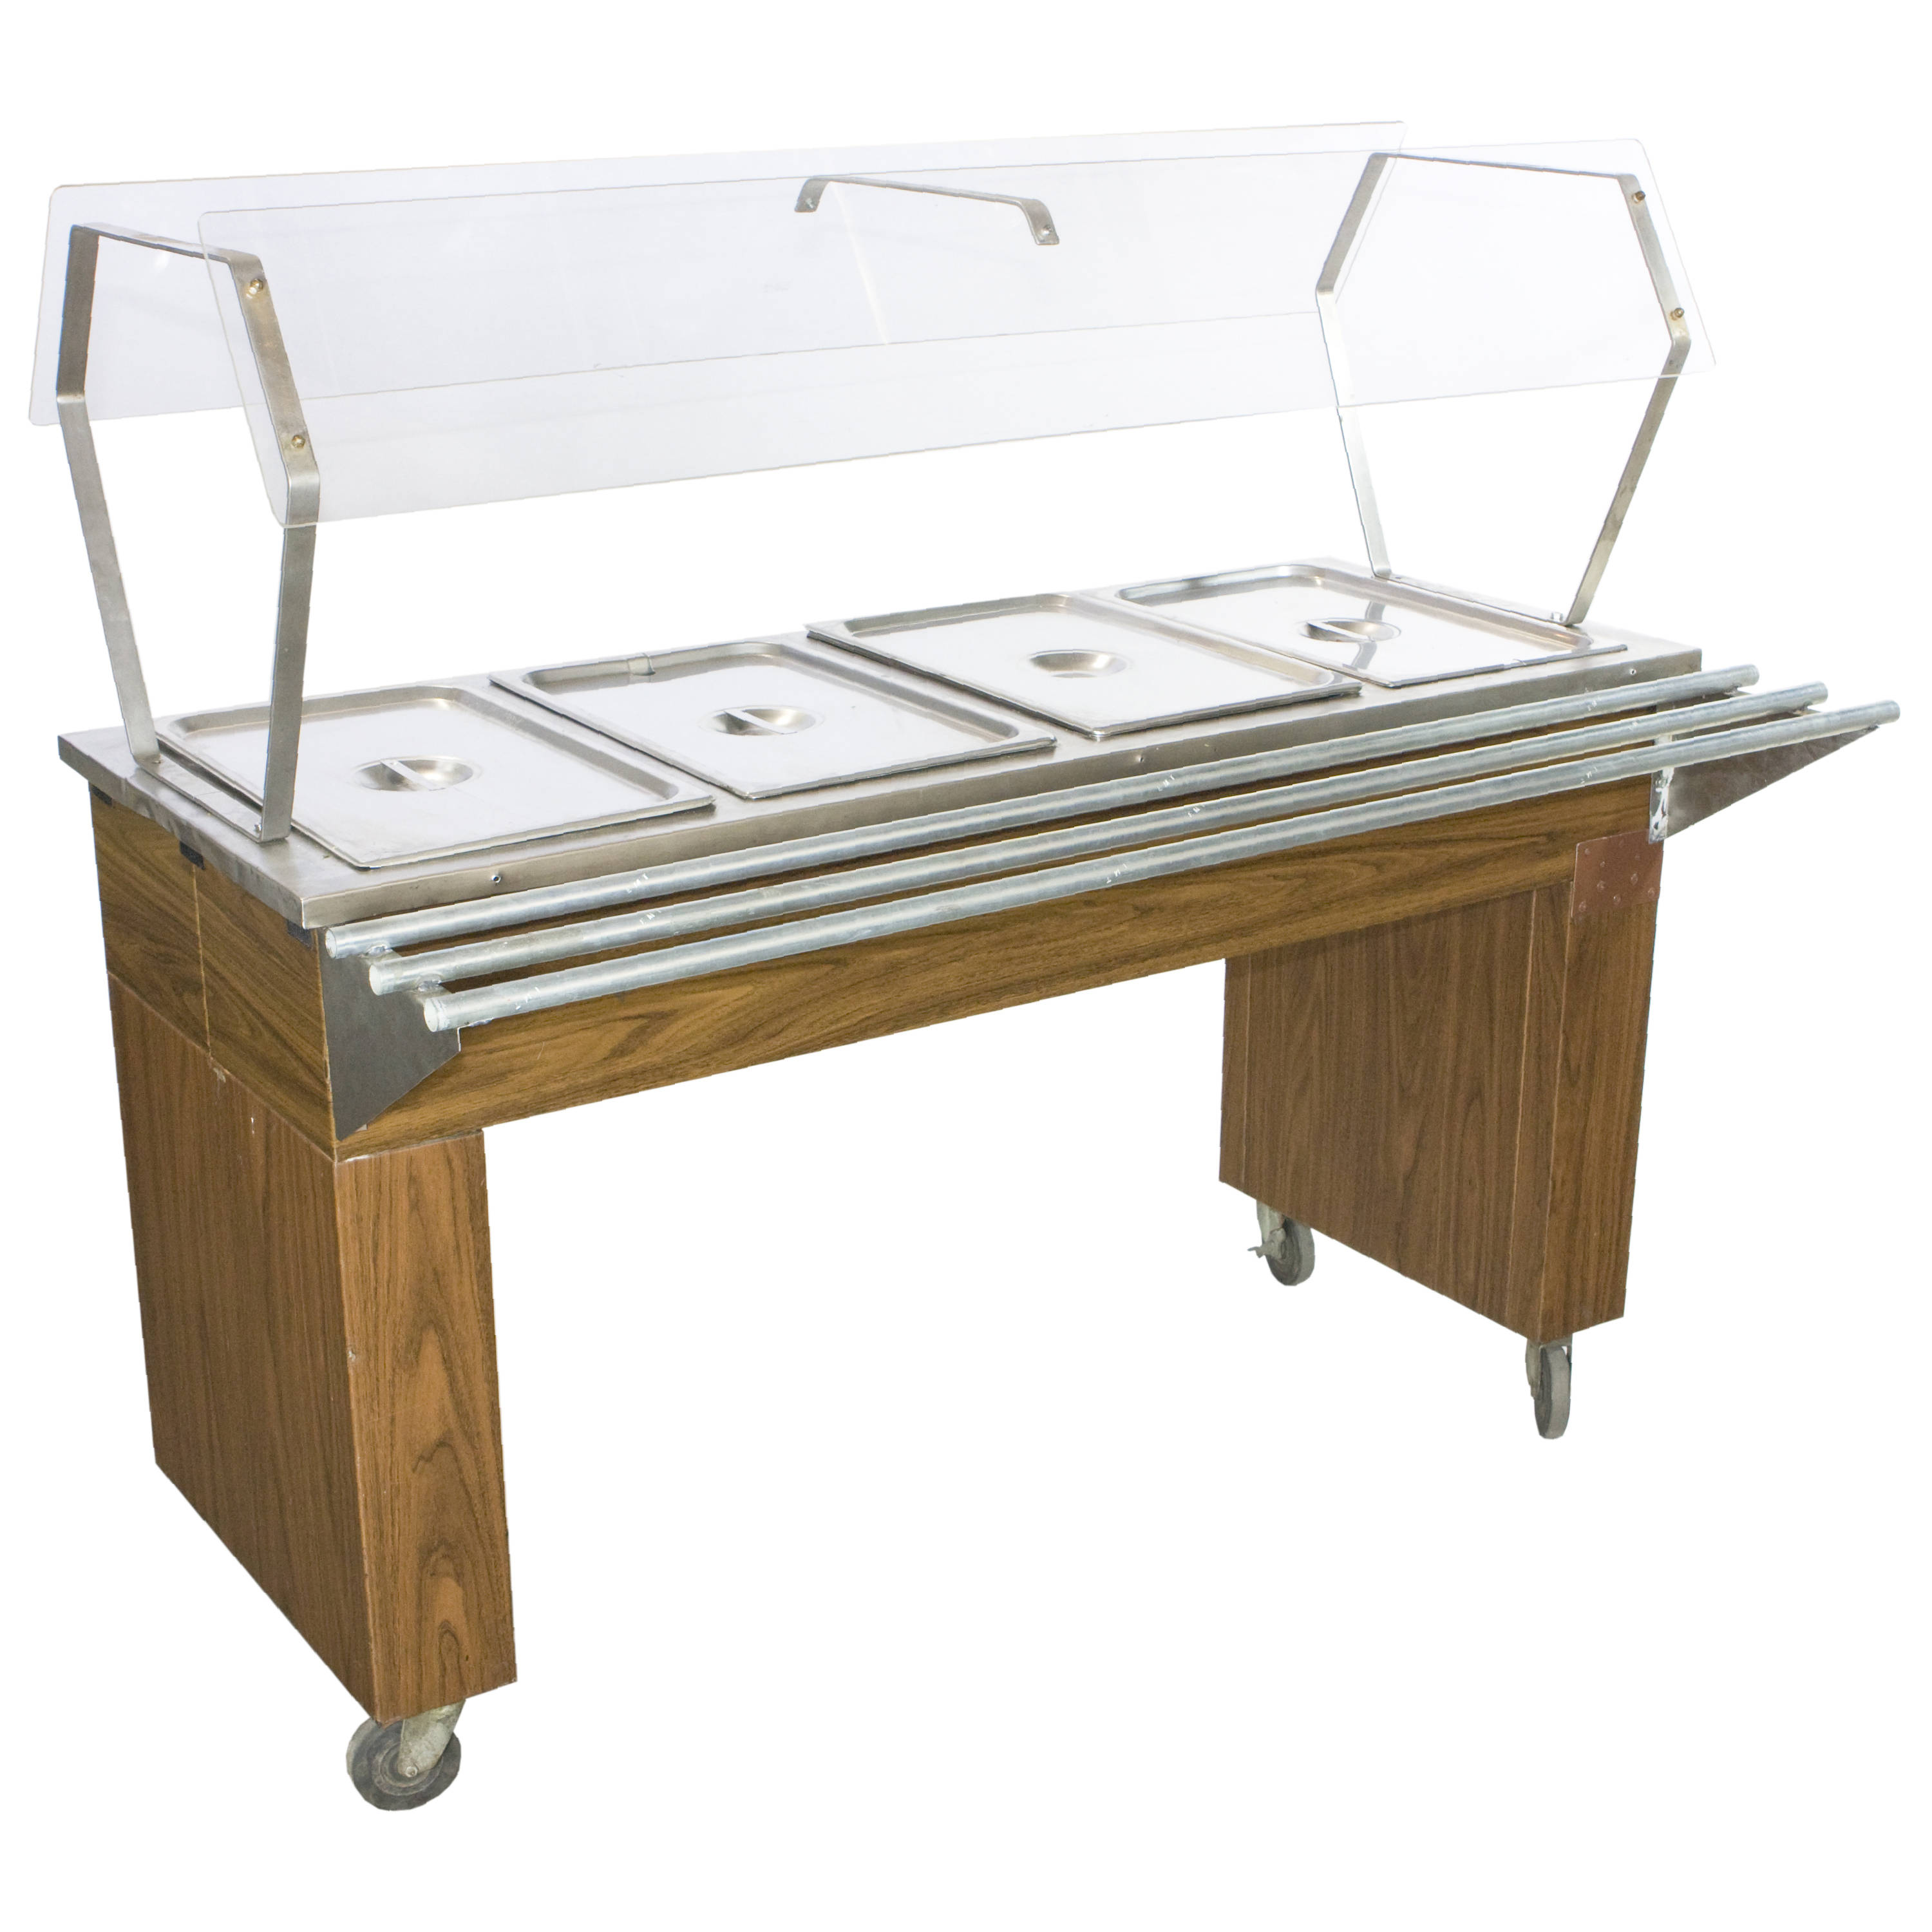 CAFETERIA STEAM TABLE W TRAY RAIL SNEEZE GUARD Air Designs - Cafeteria steam table